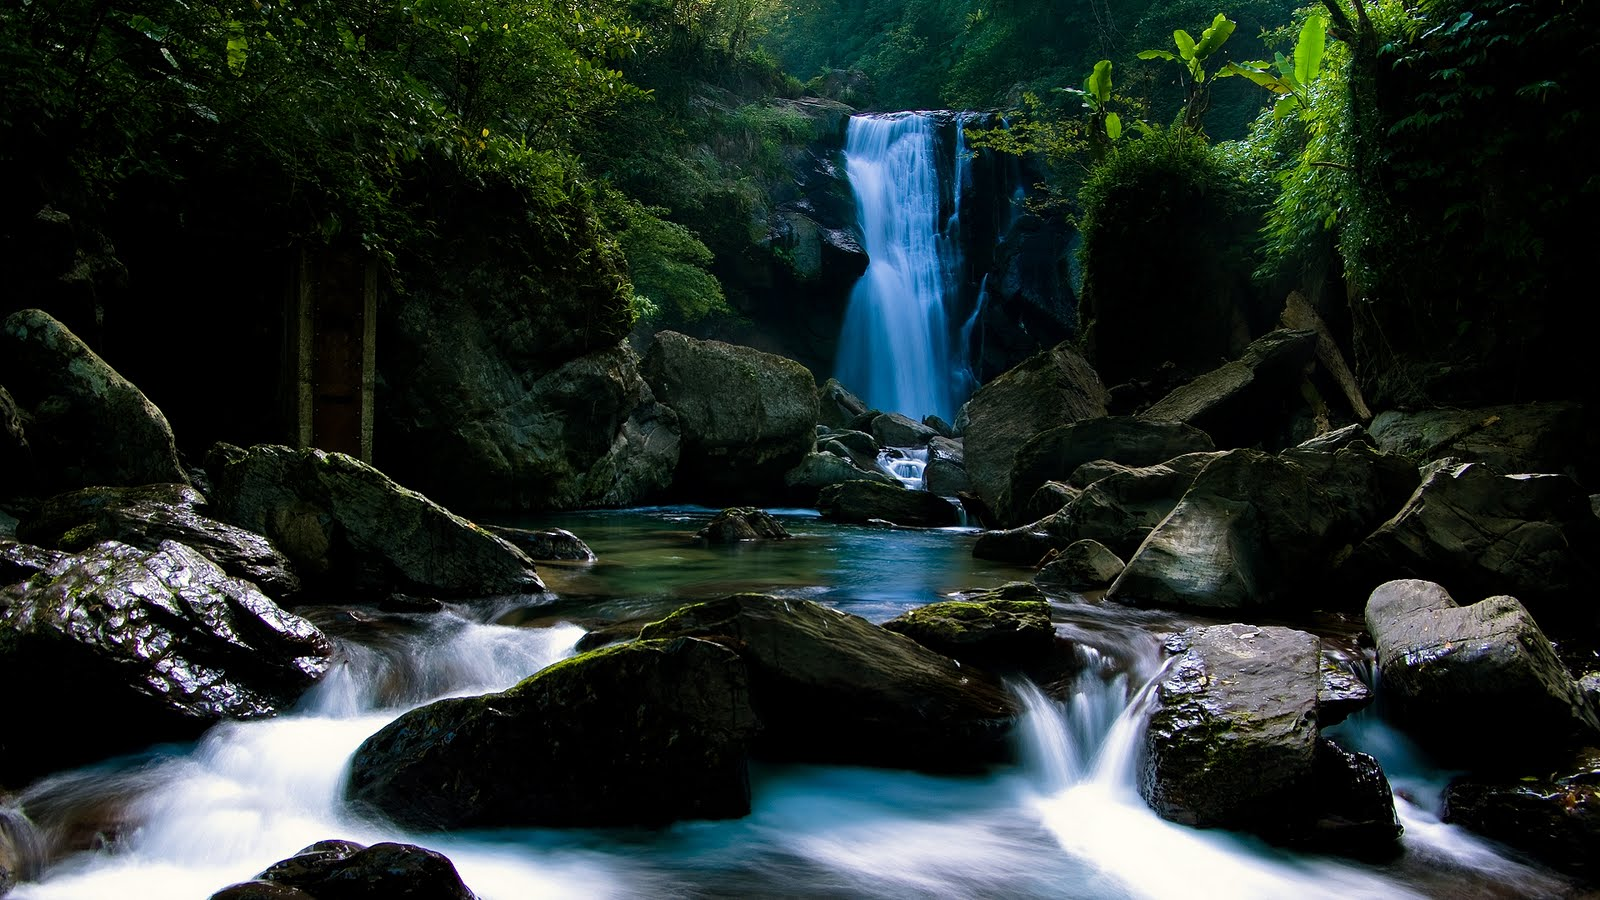 https://2.bp.blogspot.com/_2UbsSBz9ckE/Sq7DJEShK5I/AAAAAAAAAPw/jD3l9OQzOUQ/s1600/1920x1080_HD_wallpaper_waterfall_nature.jpg